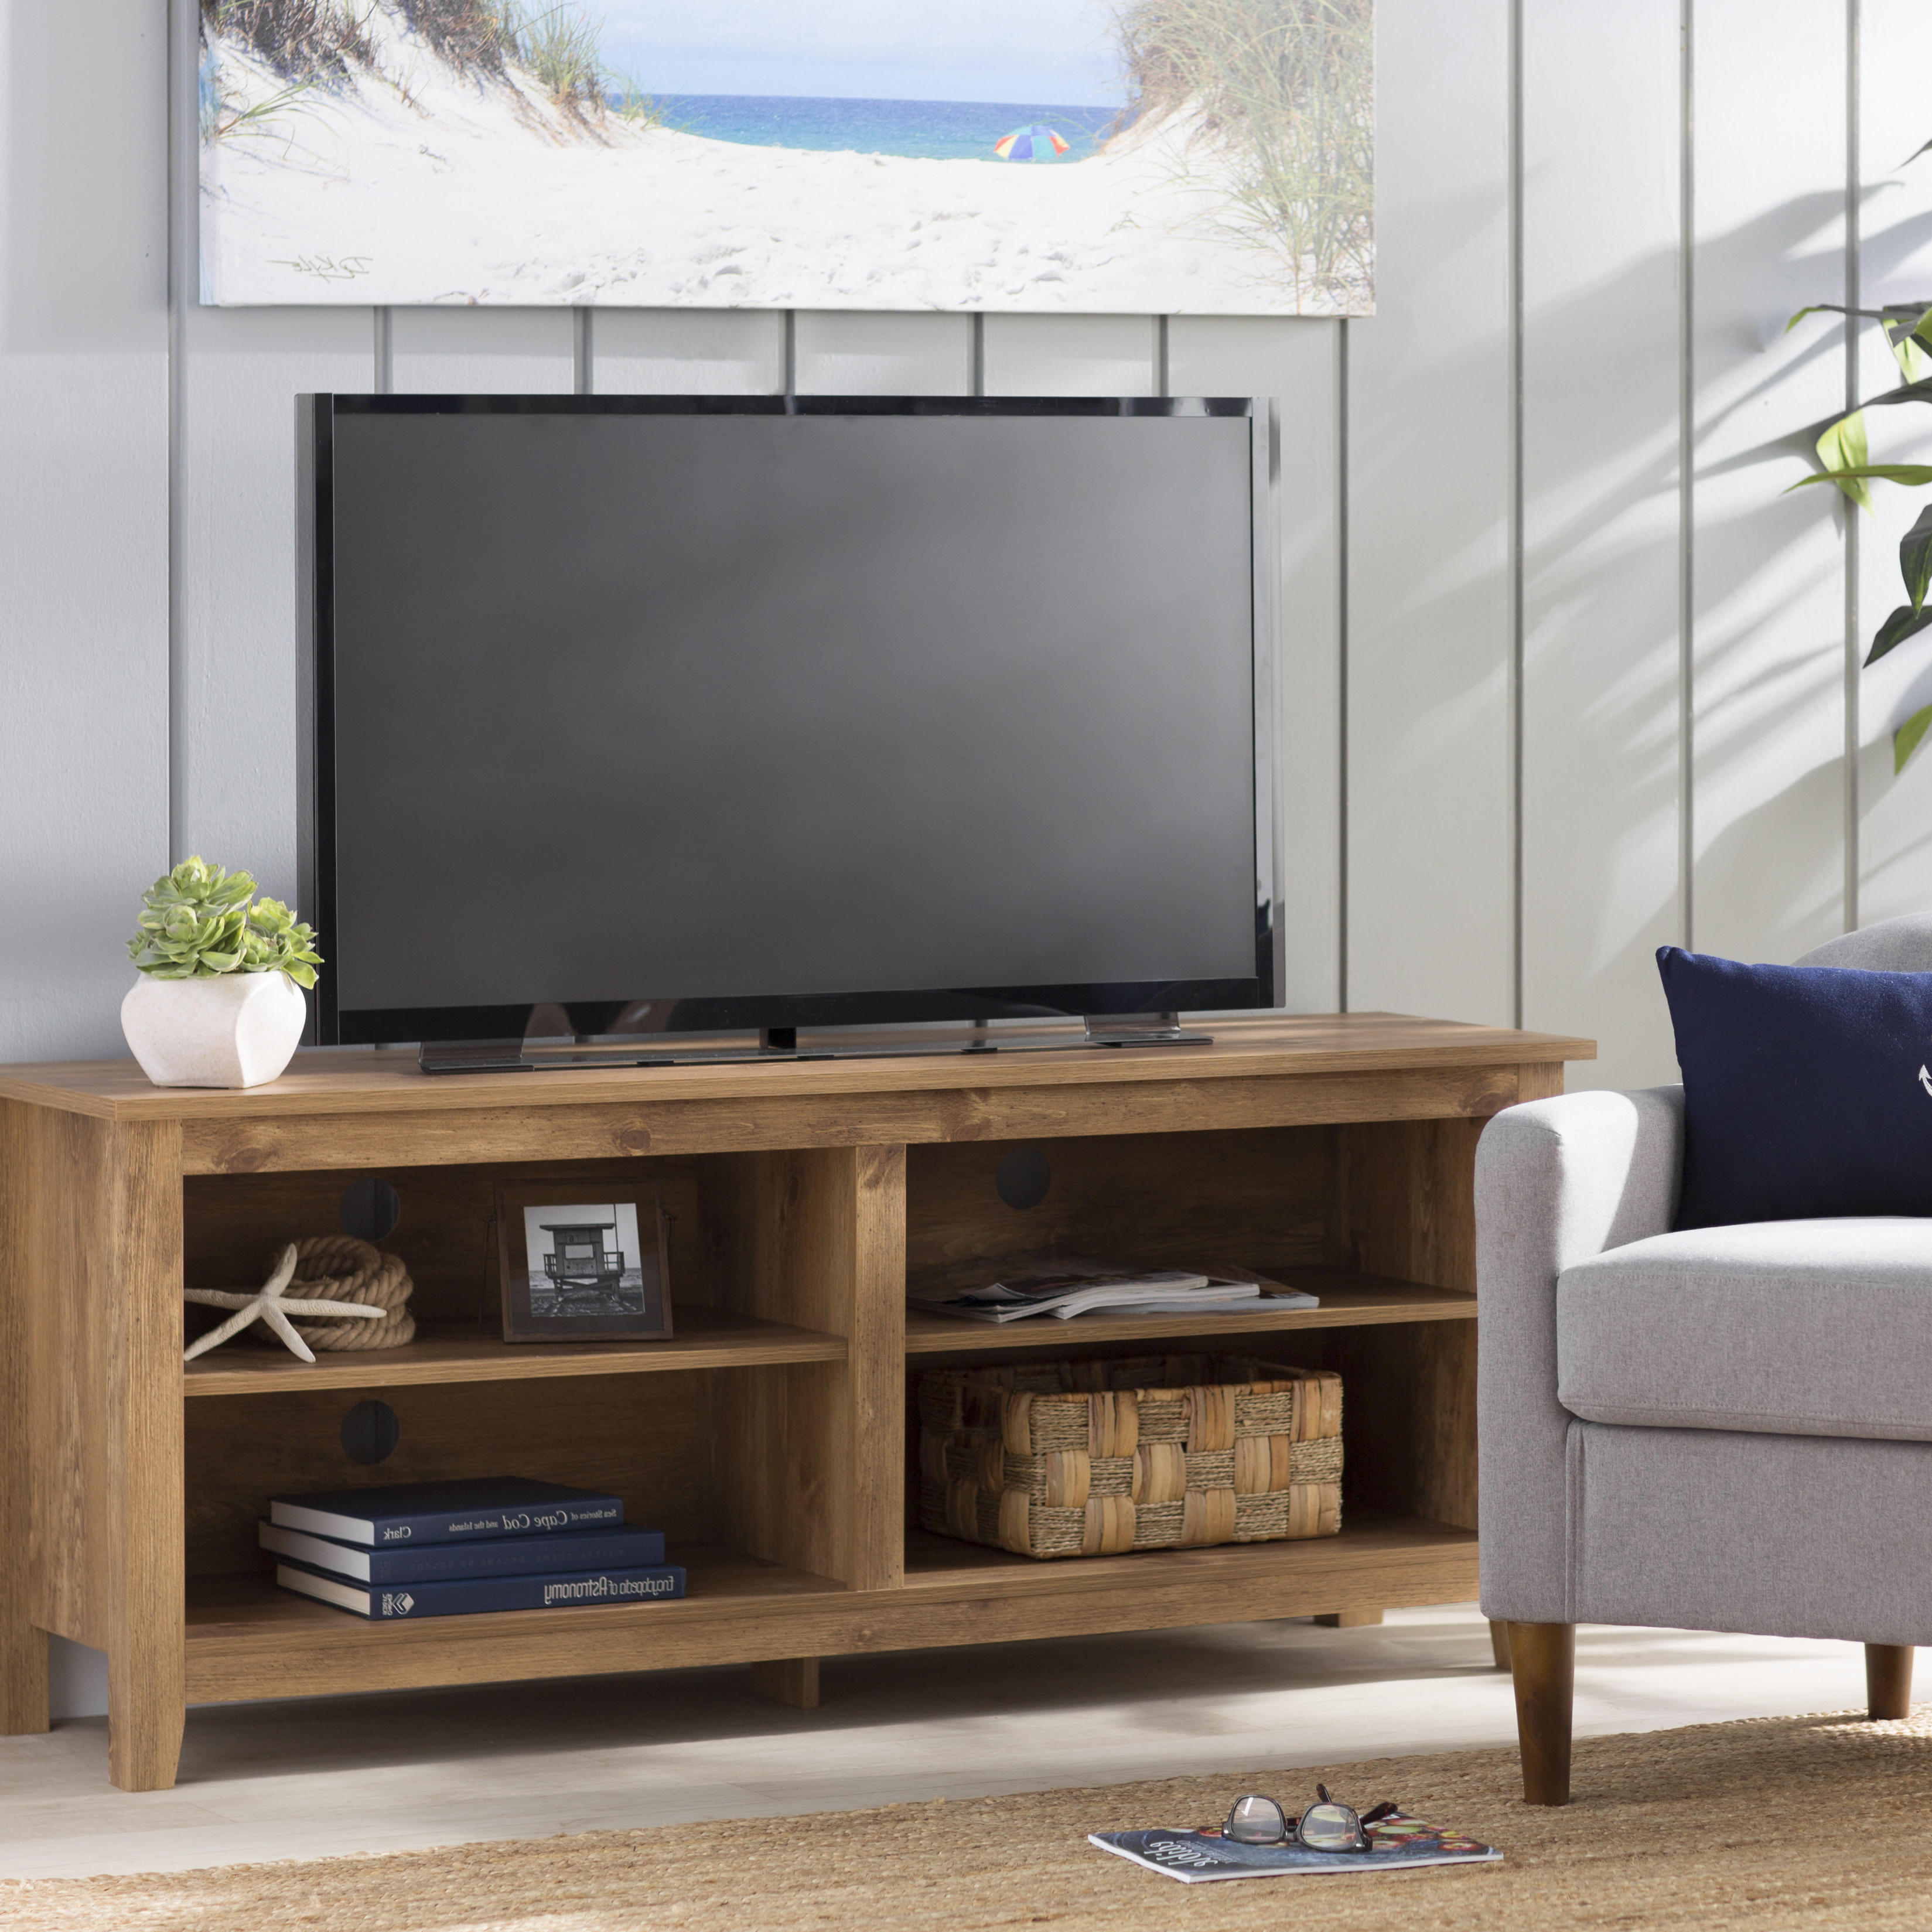 Widely Used Tv Stands & Entertainment Centers You'll Love (View 20 of 20)